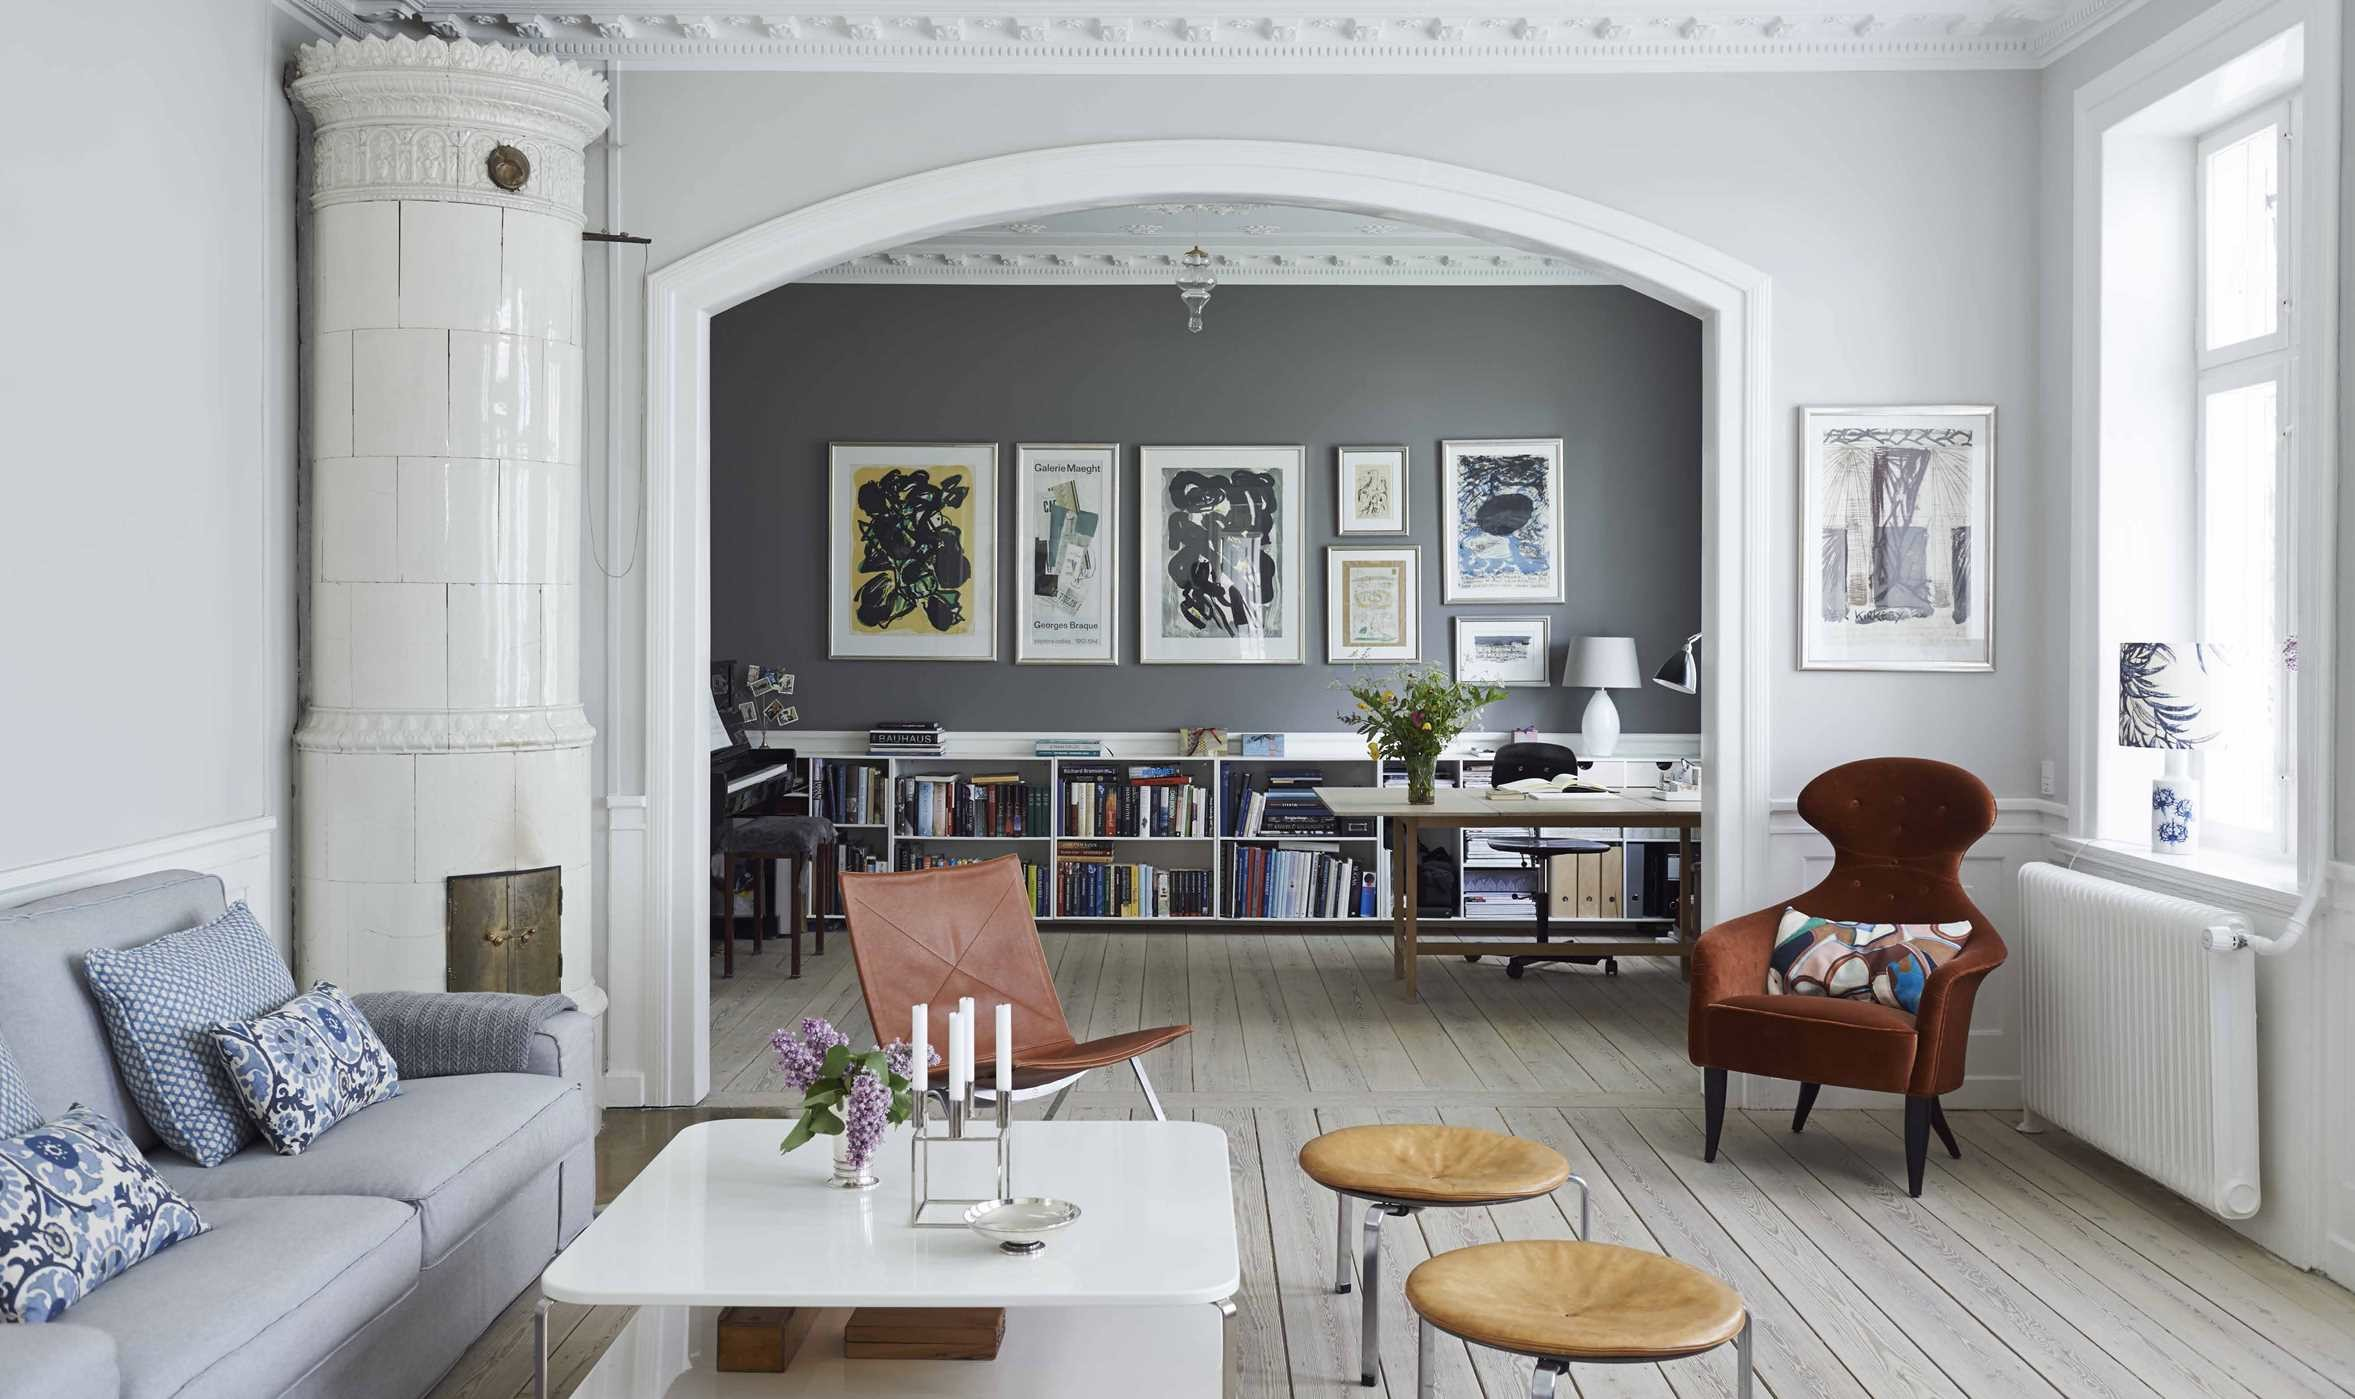 The scandinavian home book by niki brantmark official - Scandinavian interior design magazine ...